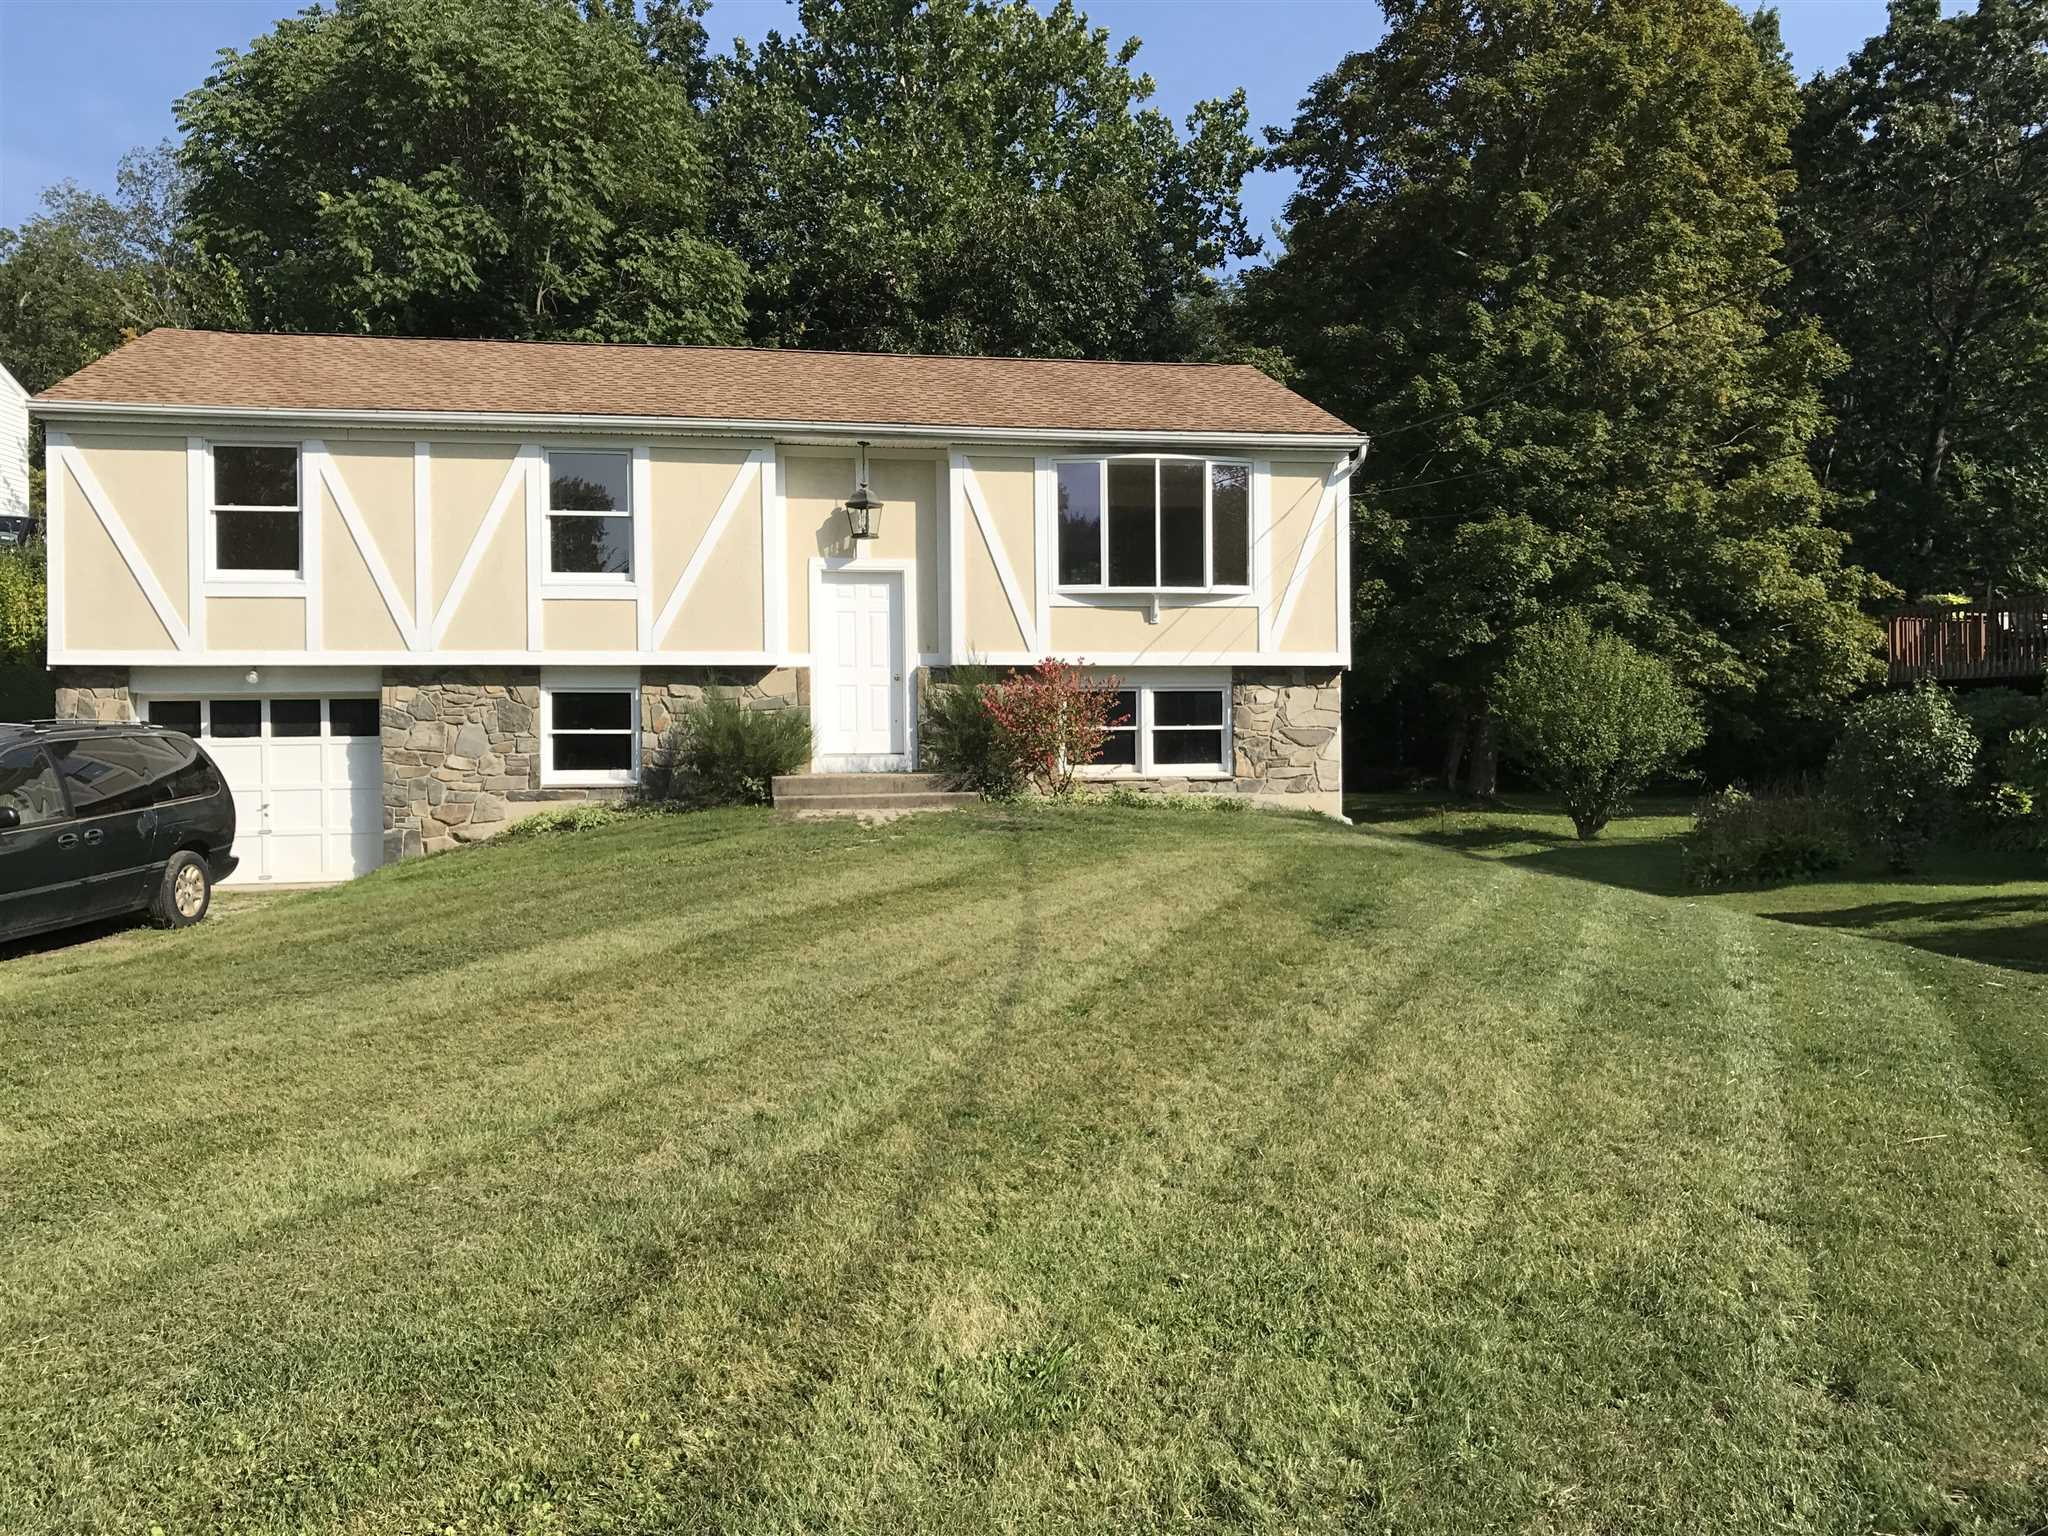 Single Family Home for Sale at 12 HYDE PARK Drive 12 HYDE PARK Drive Hyde Park, New York 12538 United States